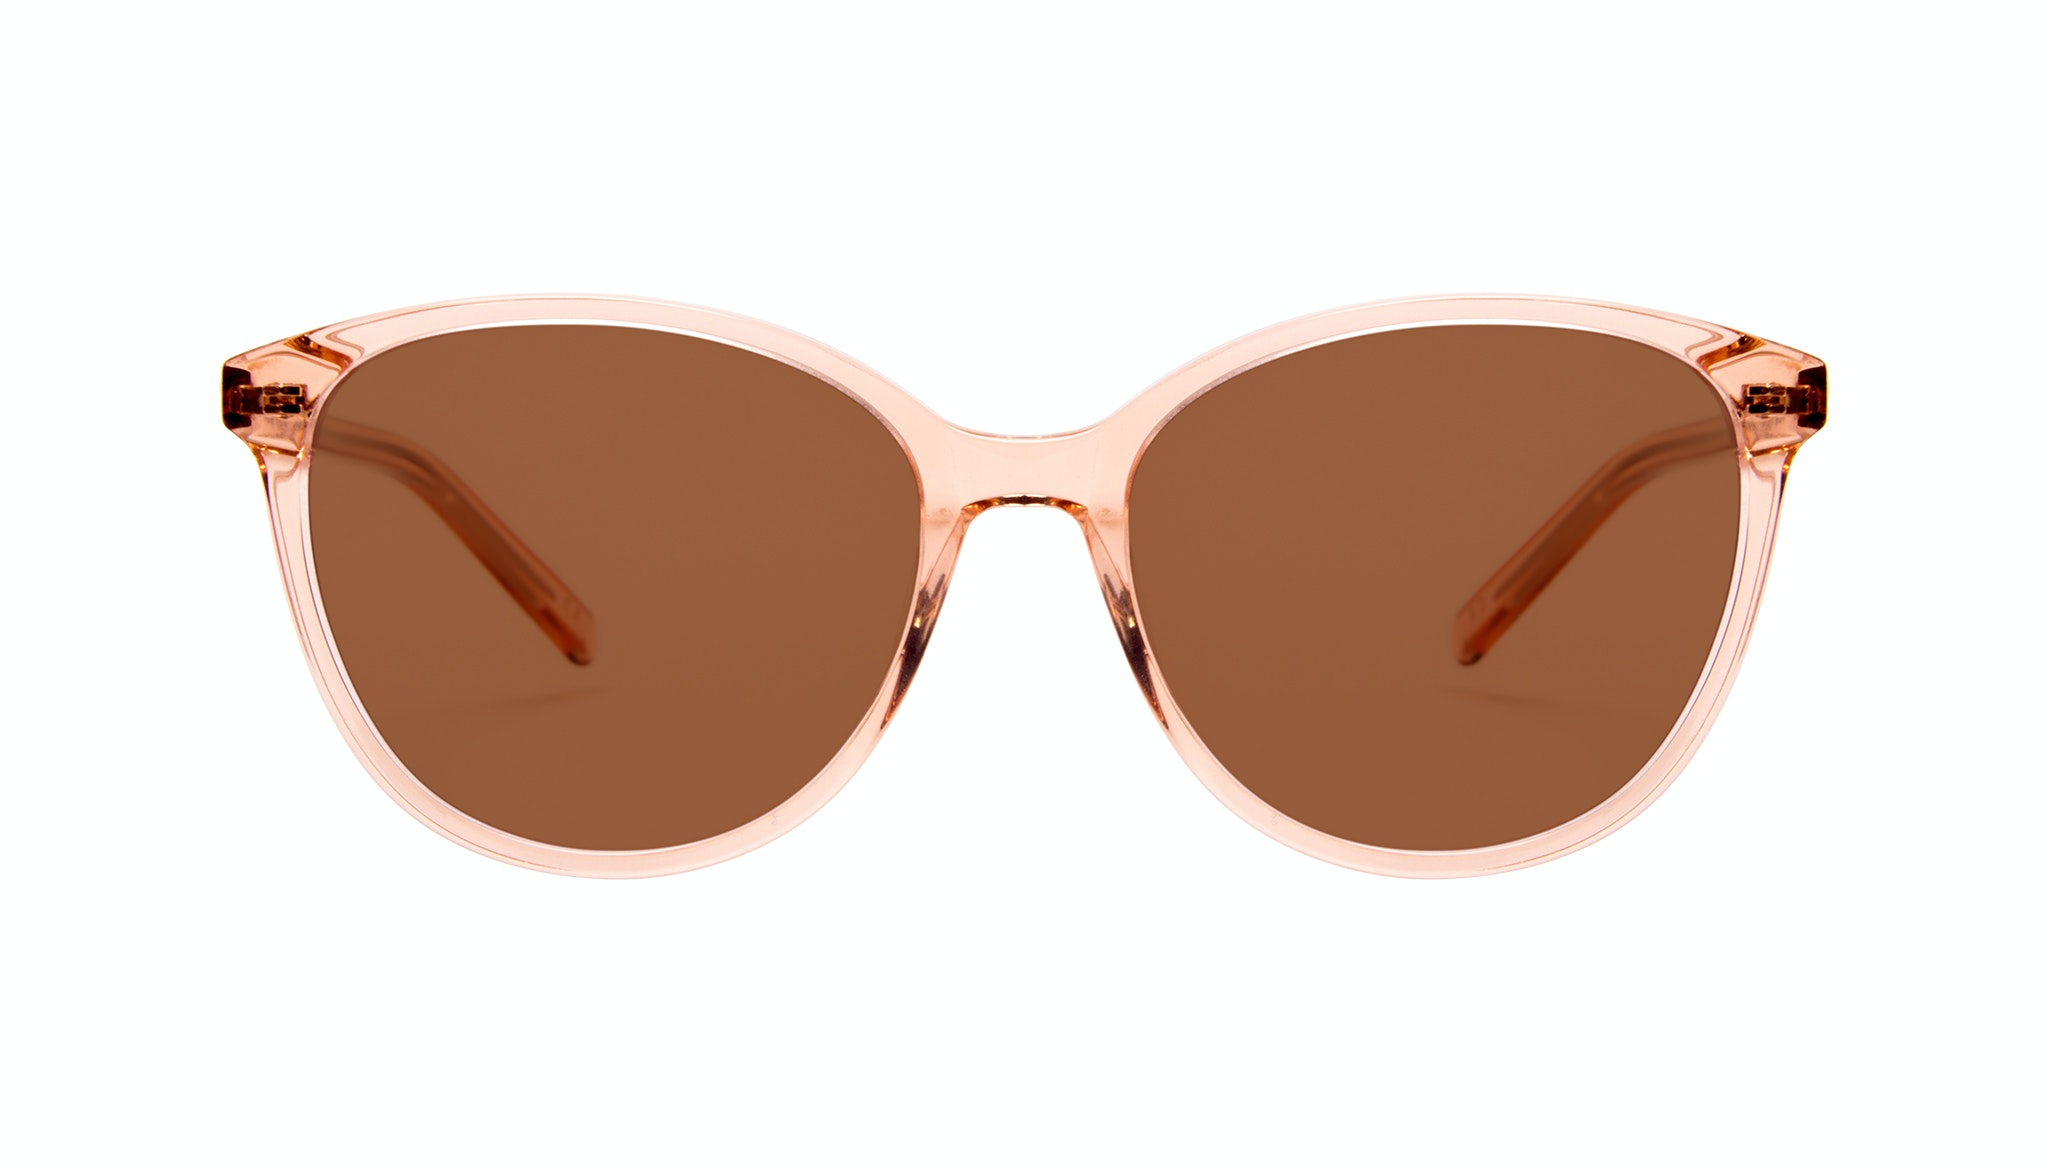 Affordable Fashion Glasses Cat Eye Round Sunglasses Women Imagine Peach